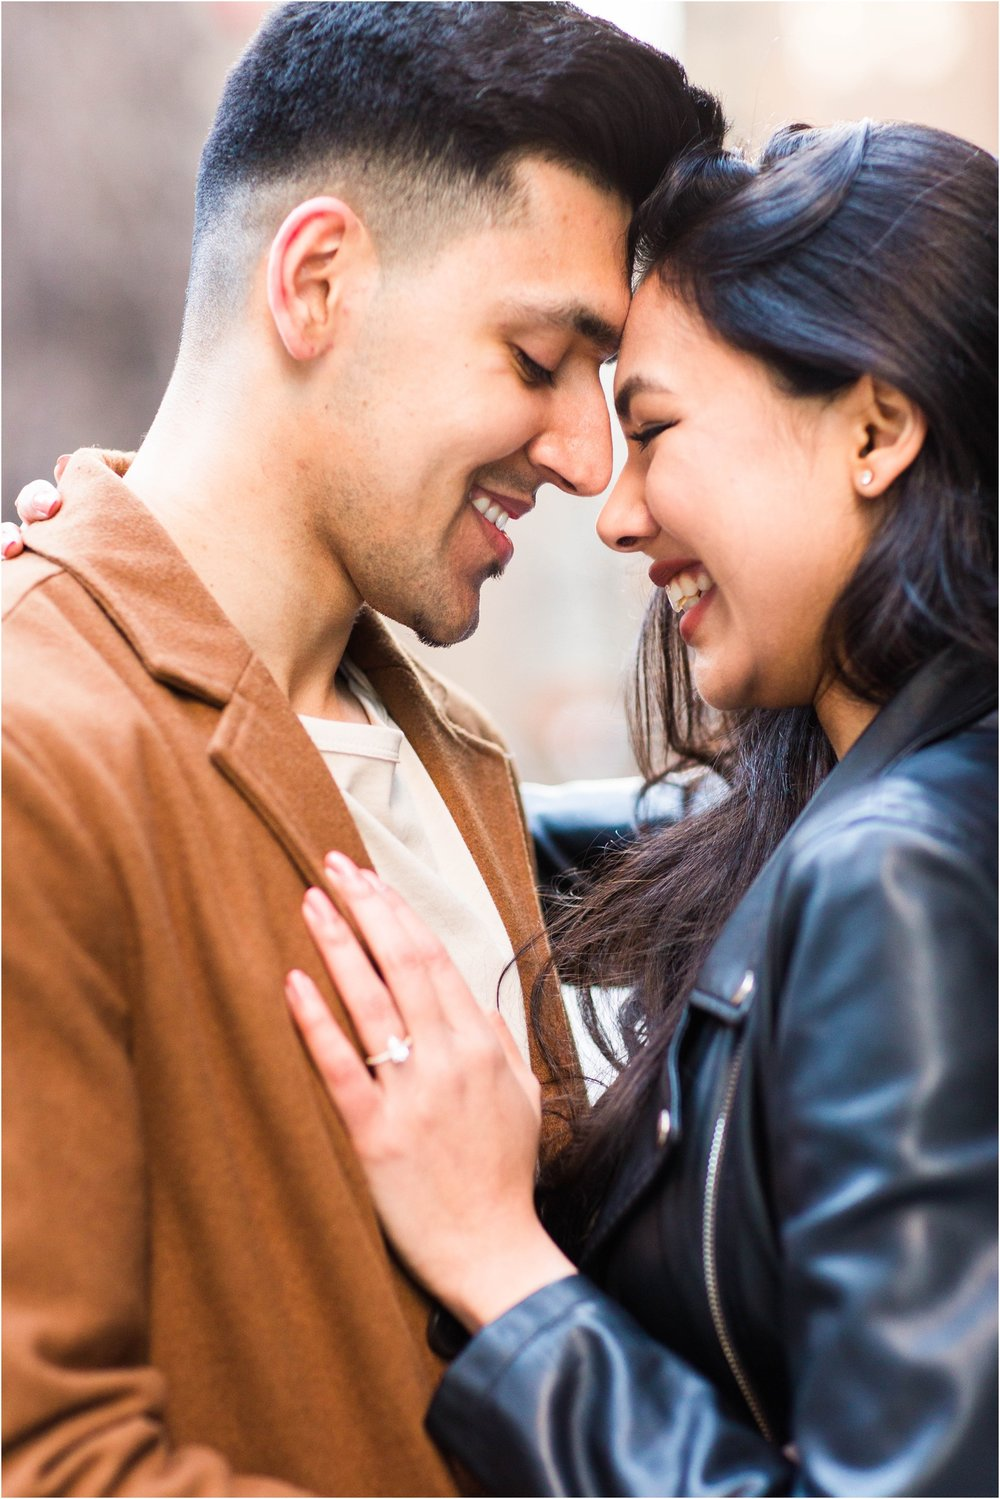 Distillery-District-Finanical-District-Downtown-Engagement-Session-Toronto-Mississauga-Brampton-Scarborough-GTA-Pakistani-Indian-Wedding-Engagement-Photographer-Photography_0034.jpg